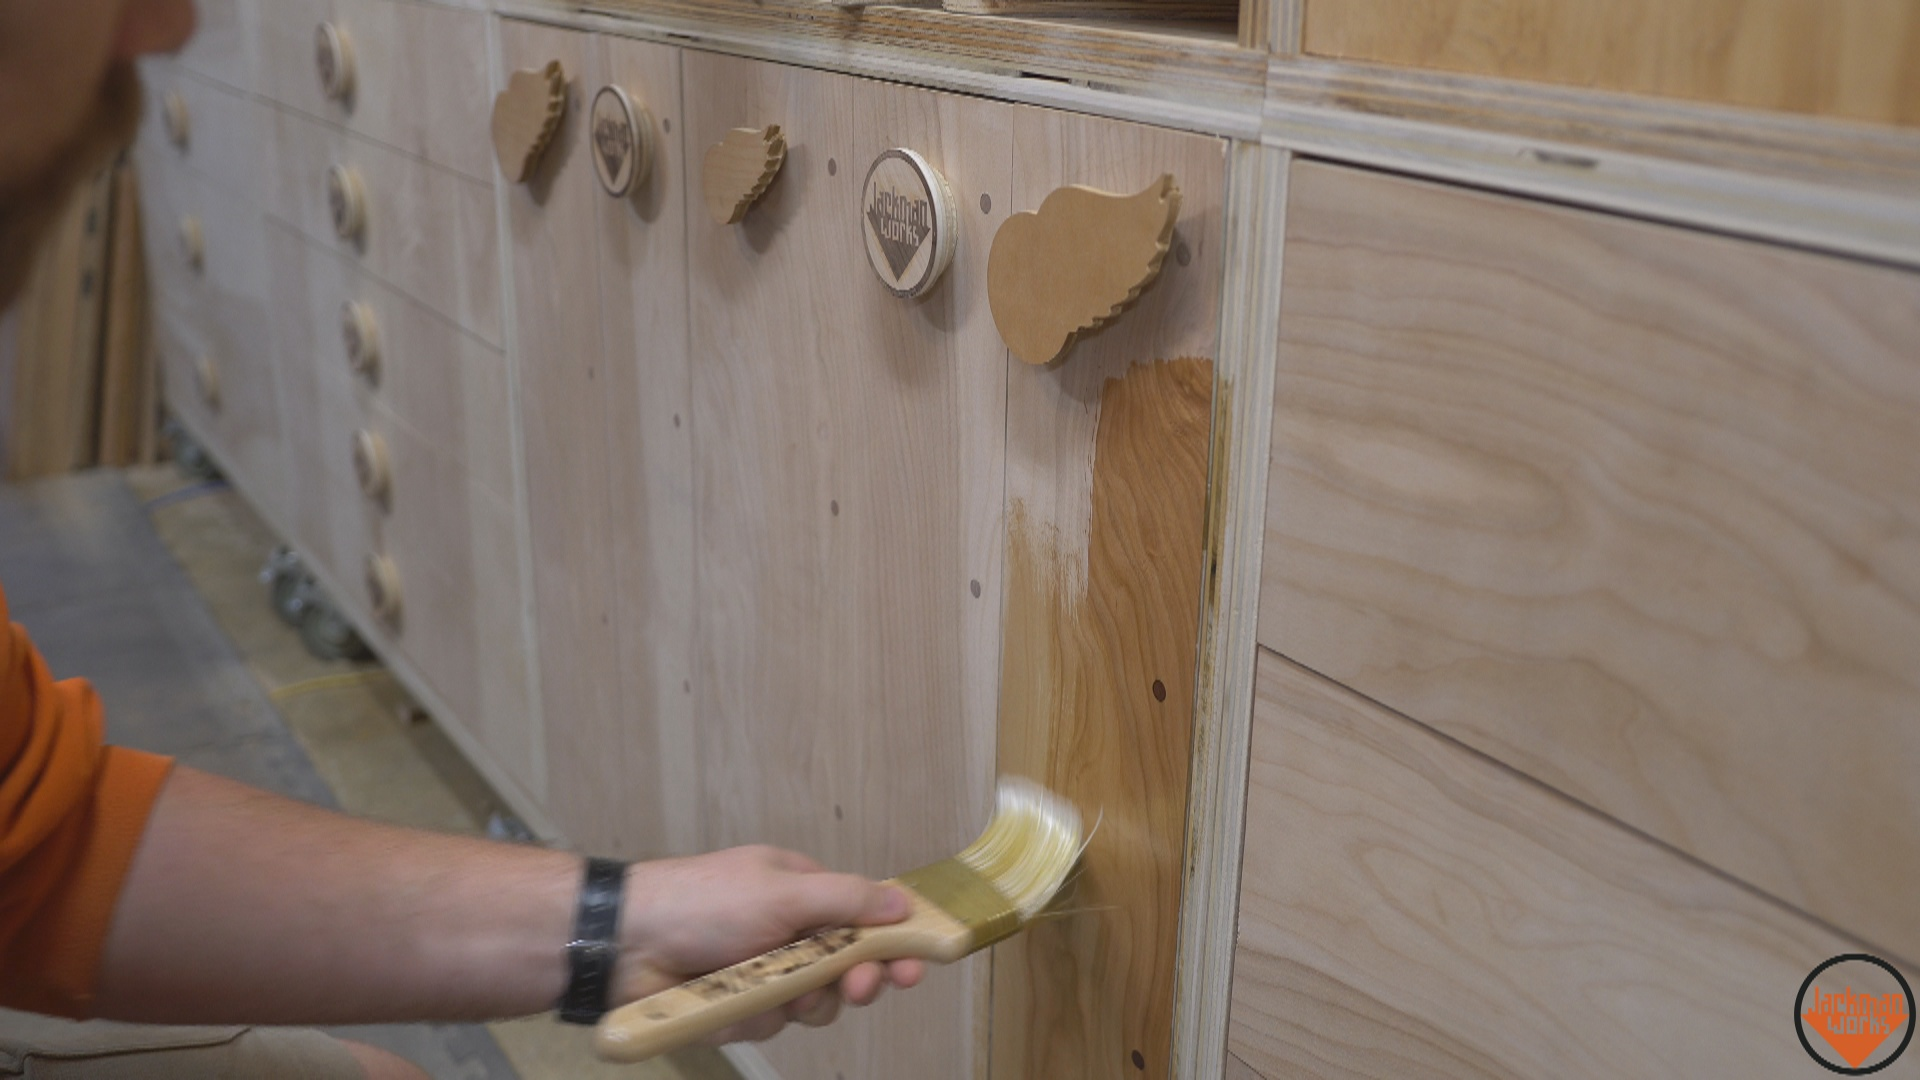 ... Storage,woodworking,wood,miter Saw Table,mitre Saw Station,miter Saw  Fence,cabinets,shop Cabinets,plywood Cabinets,purebond Plywood,best Plywood,modular  ...